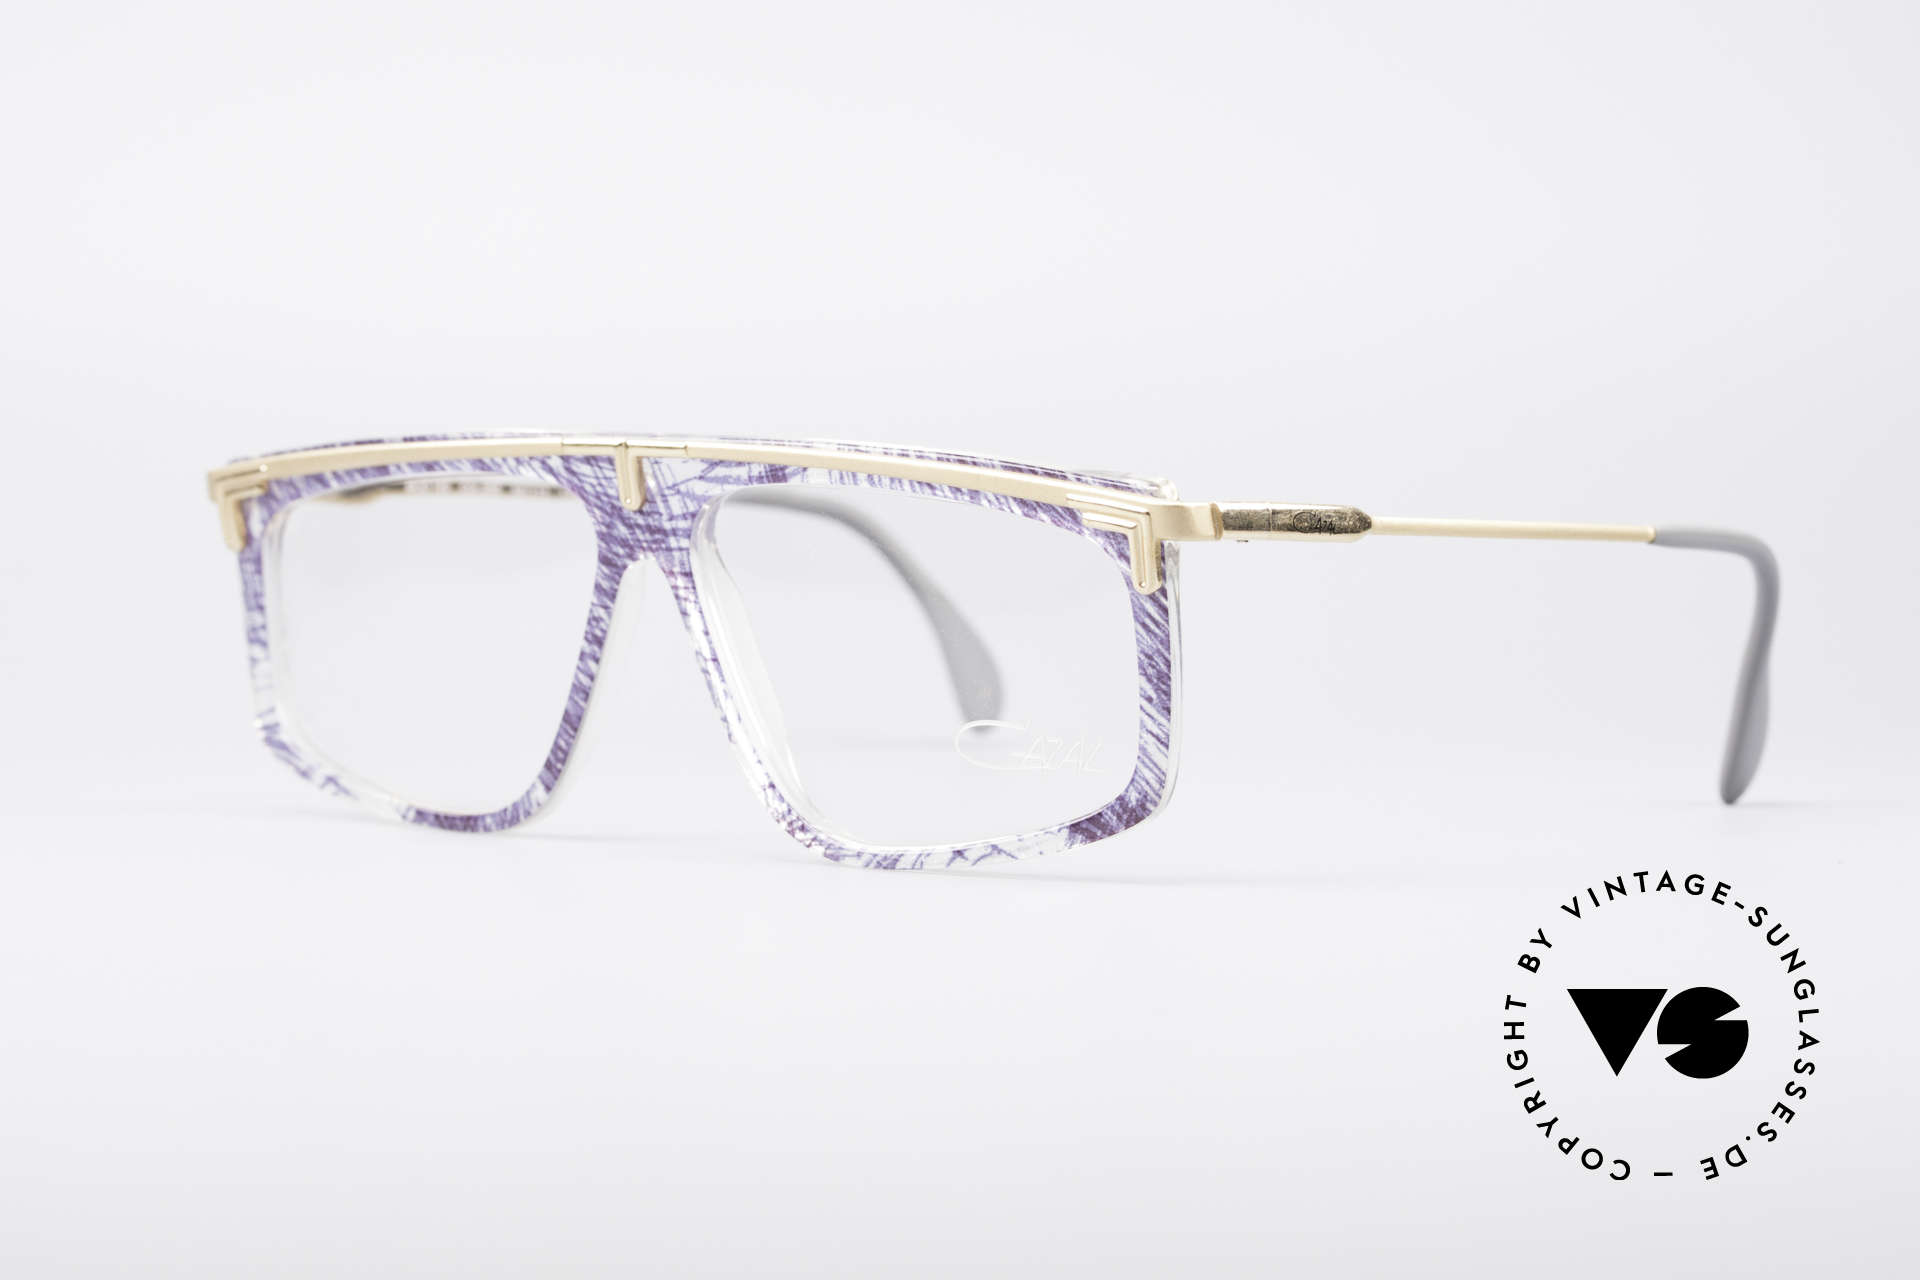 Cazal 190 Old School Hip Hop Brille, altes WEST GERMANY Original & KEINE Retrobrille!, Passend für Herren